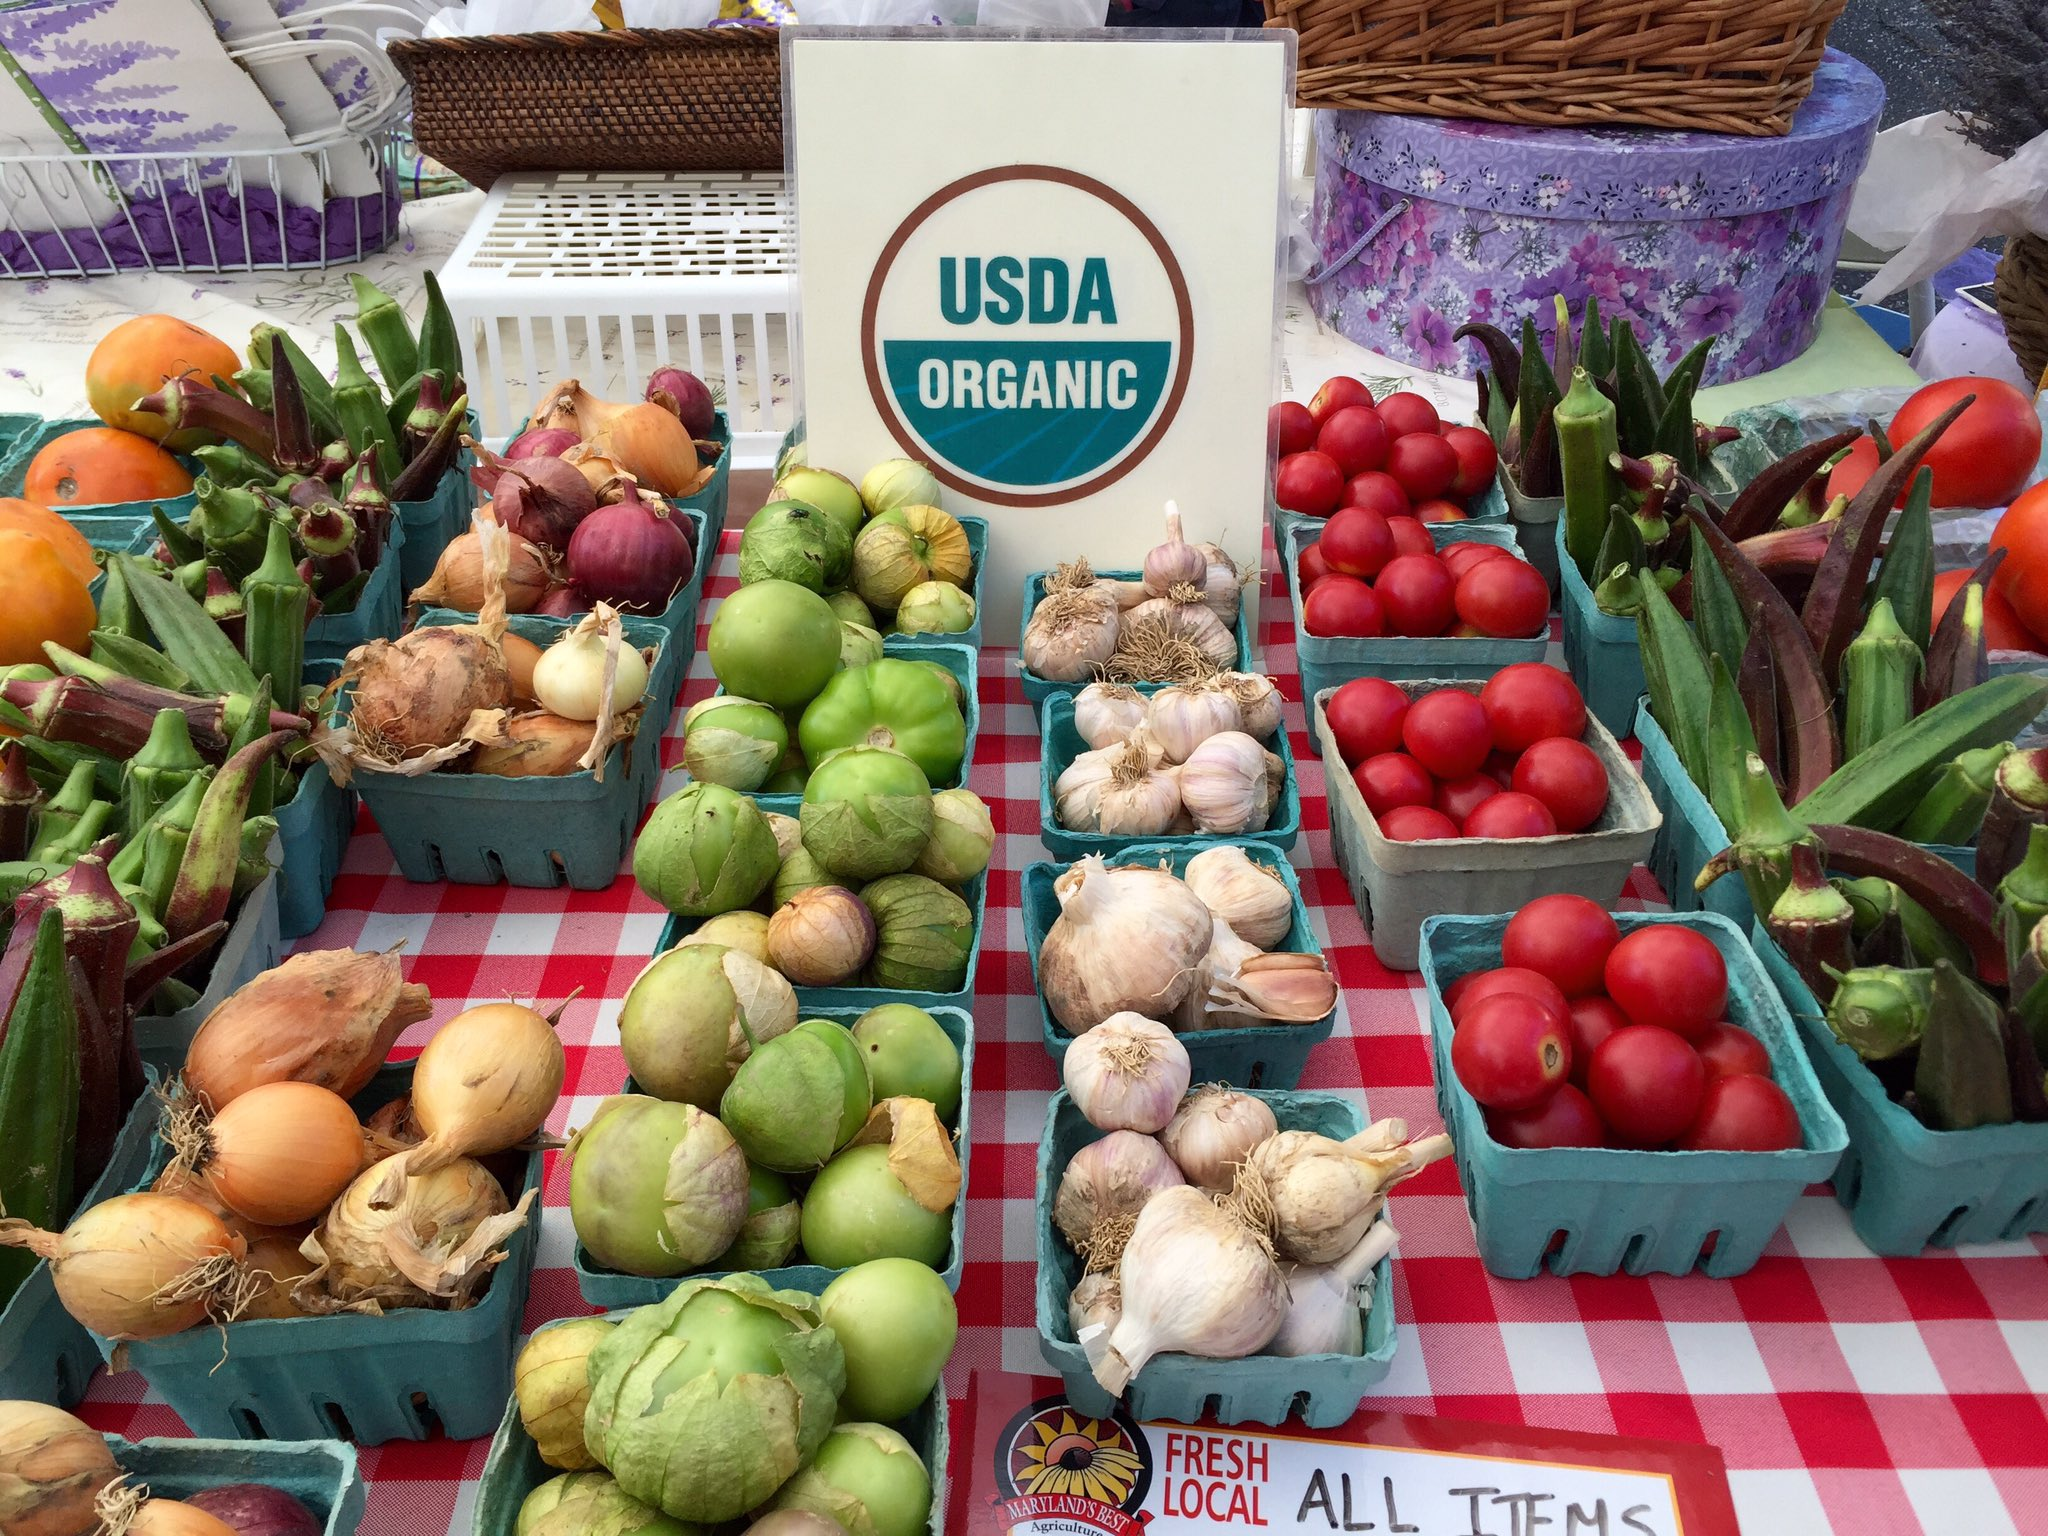 2016 Count of Certified Organic Agriculture Operations Shows Continued Growth in U.S. Market